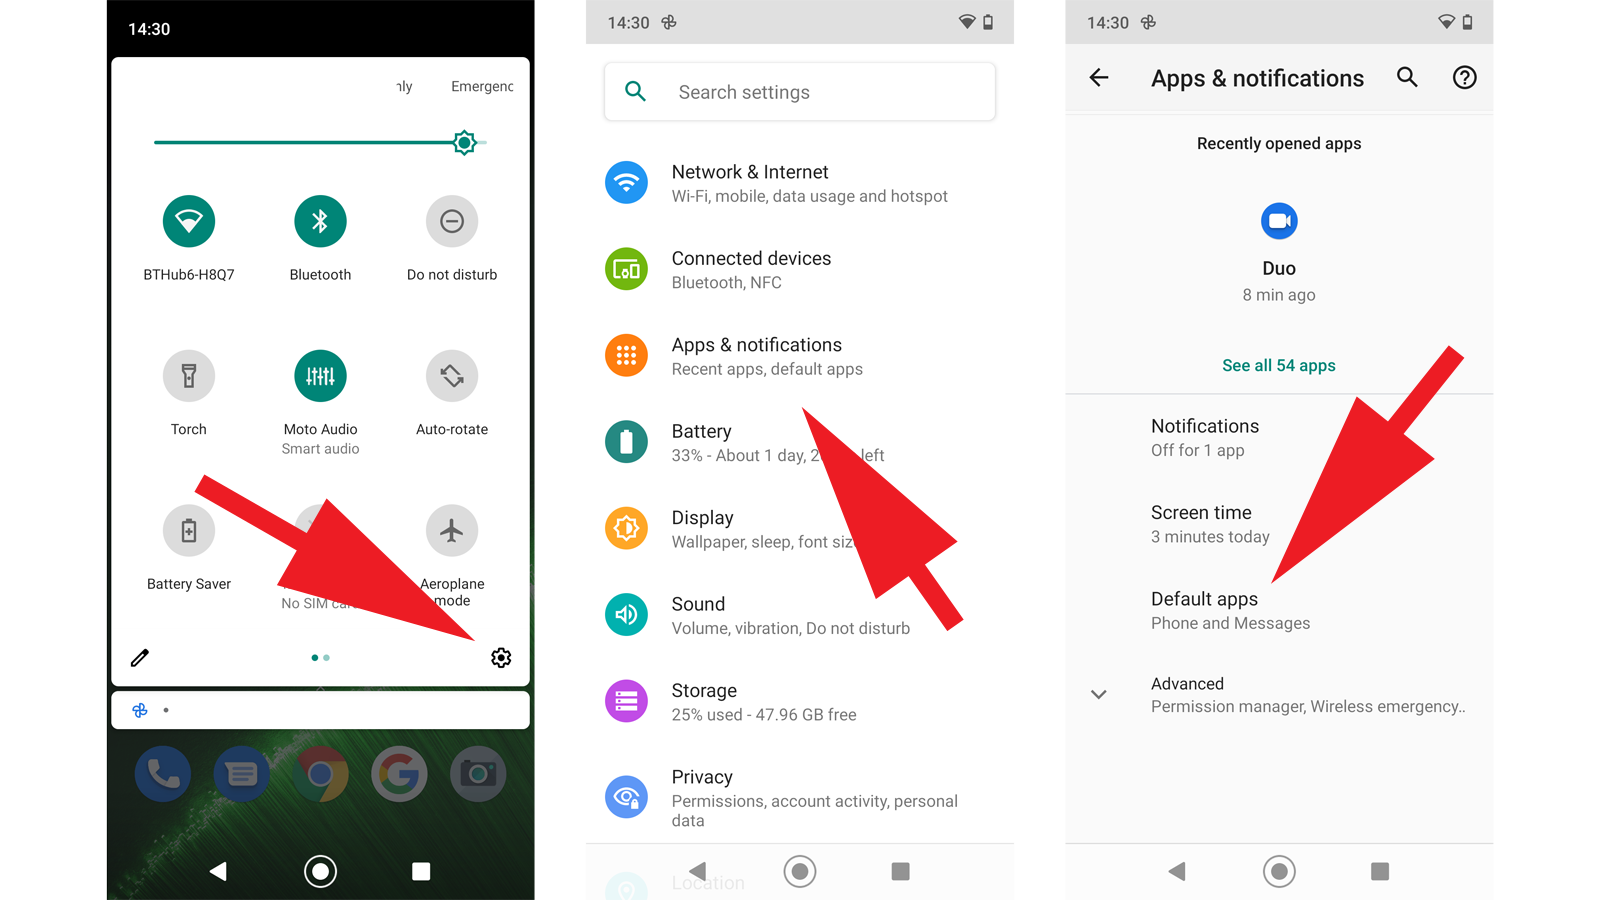 How to set default apps on Android: Finding the defaults